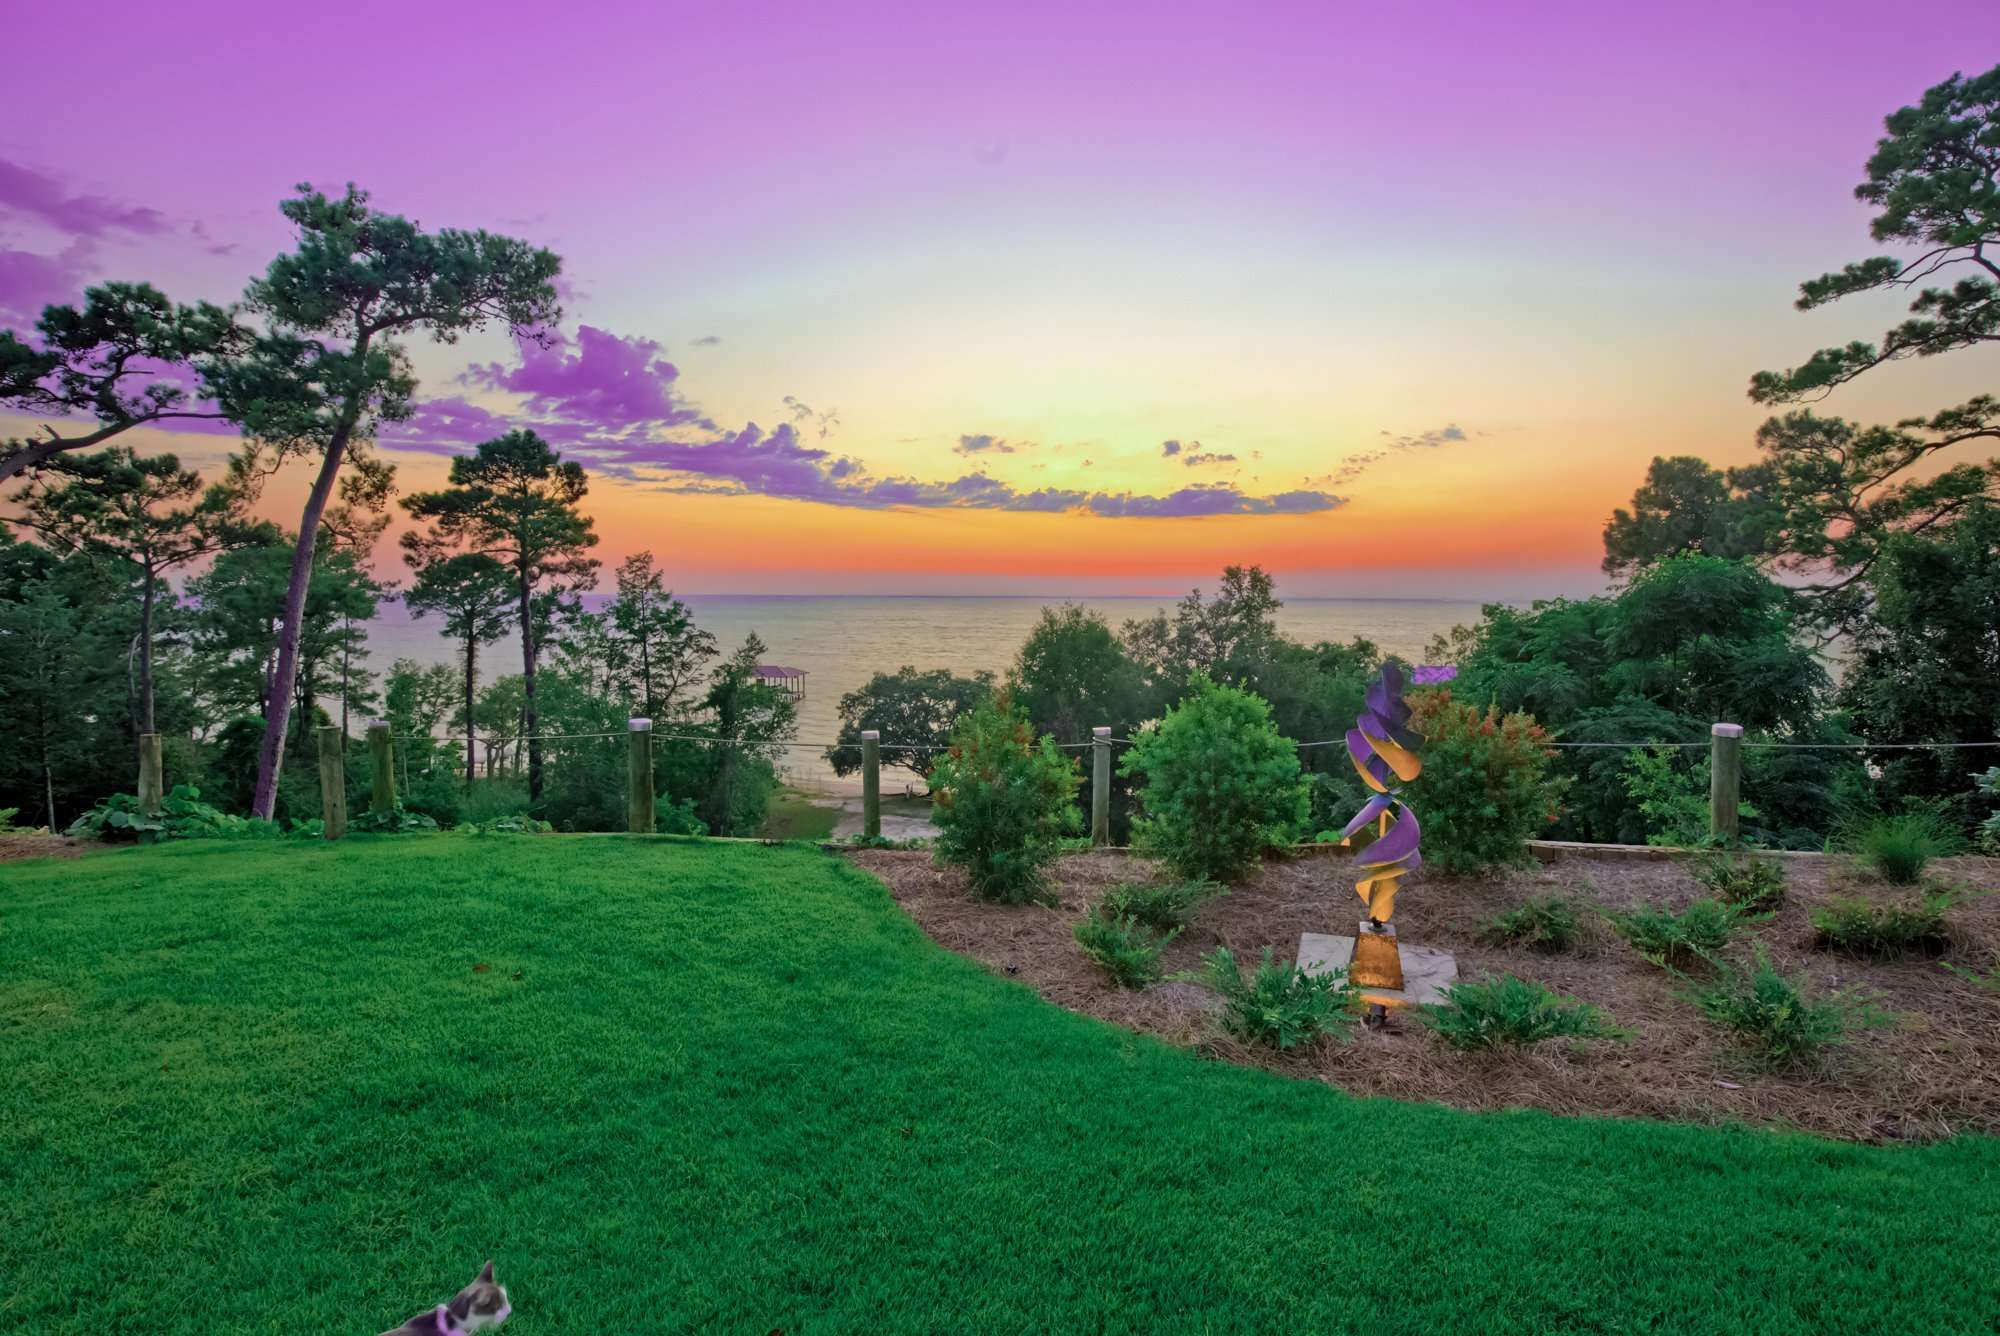 Jubilee Suites in Fairhope, AL Sunset with Sculpture